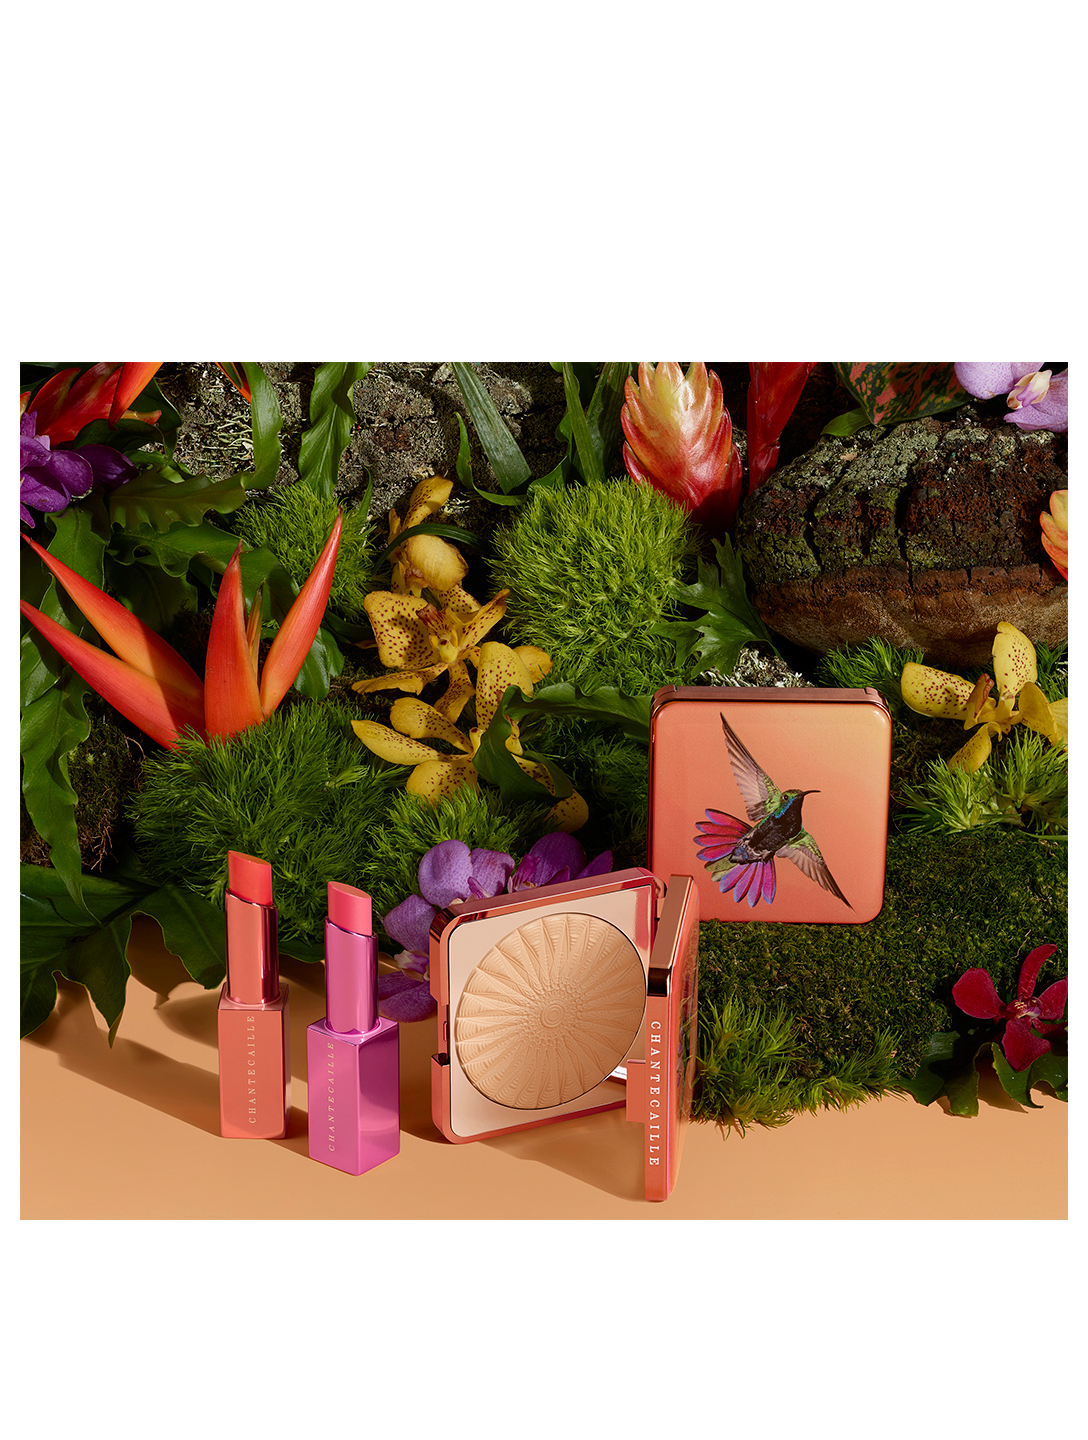 CHANTECAILLE Lip Chic - Hummingbird Limited Edition Beauty Orange